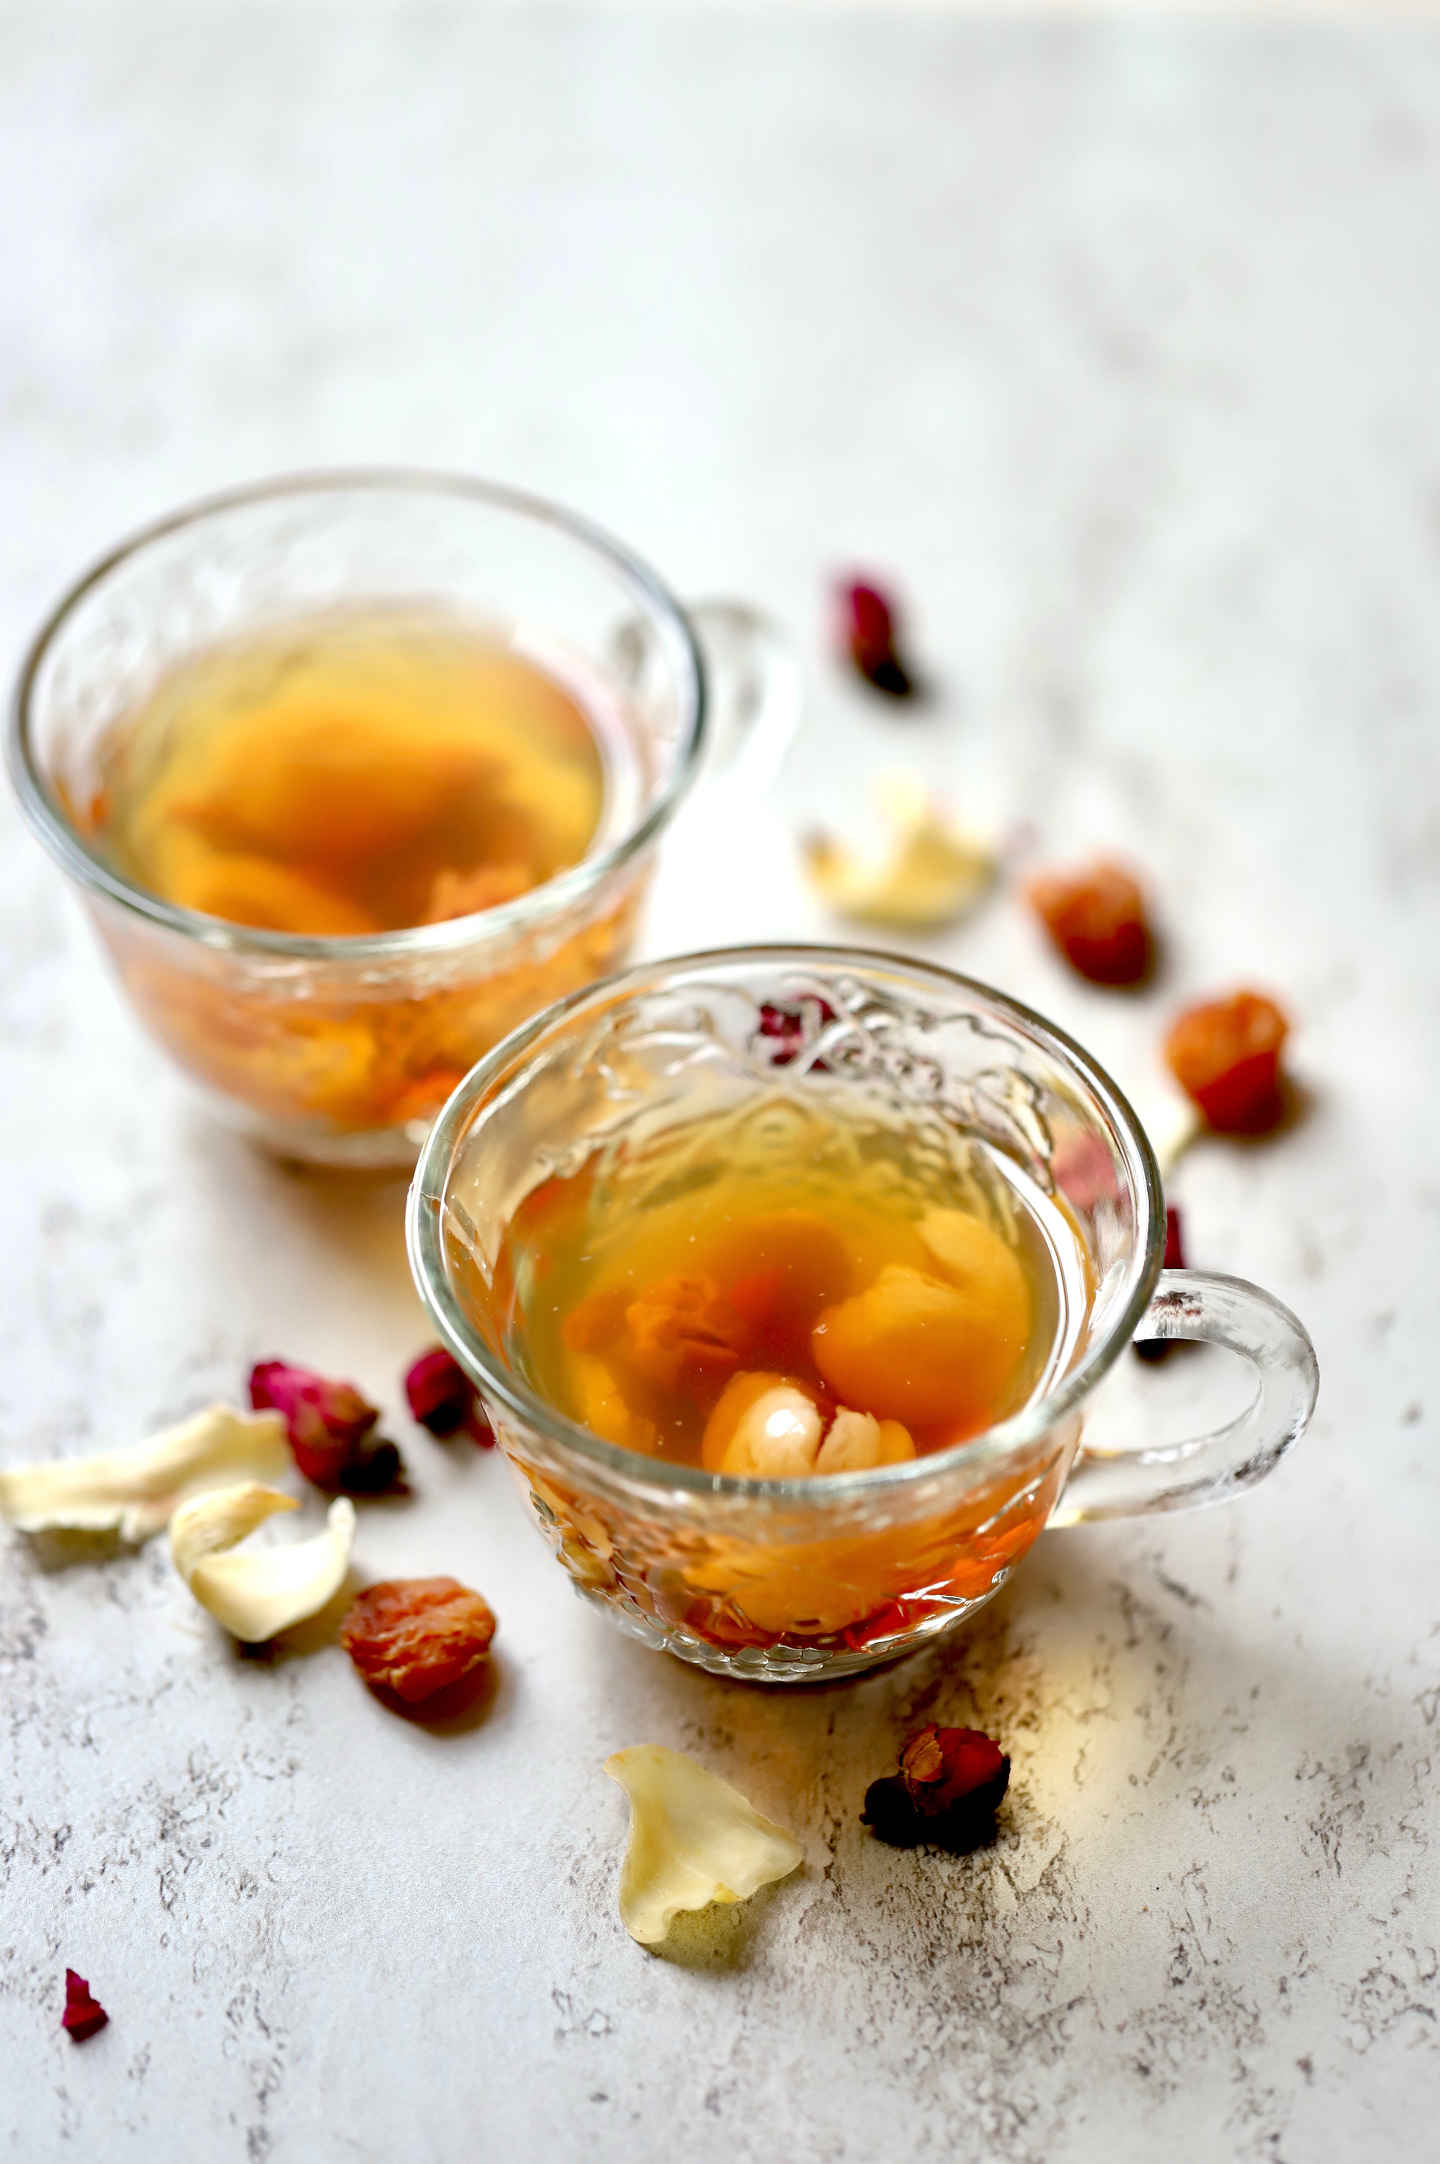 2 cups of calming tea made from Chinese fruits and flowers